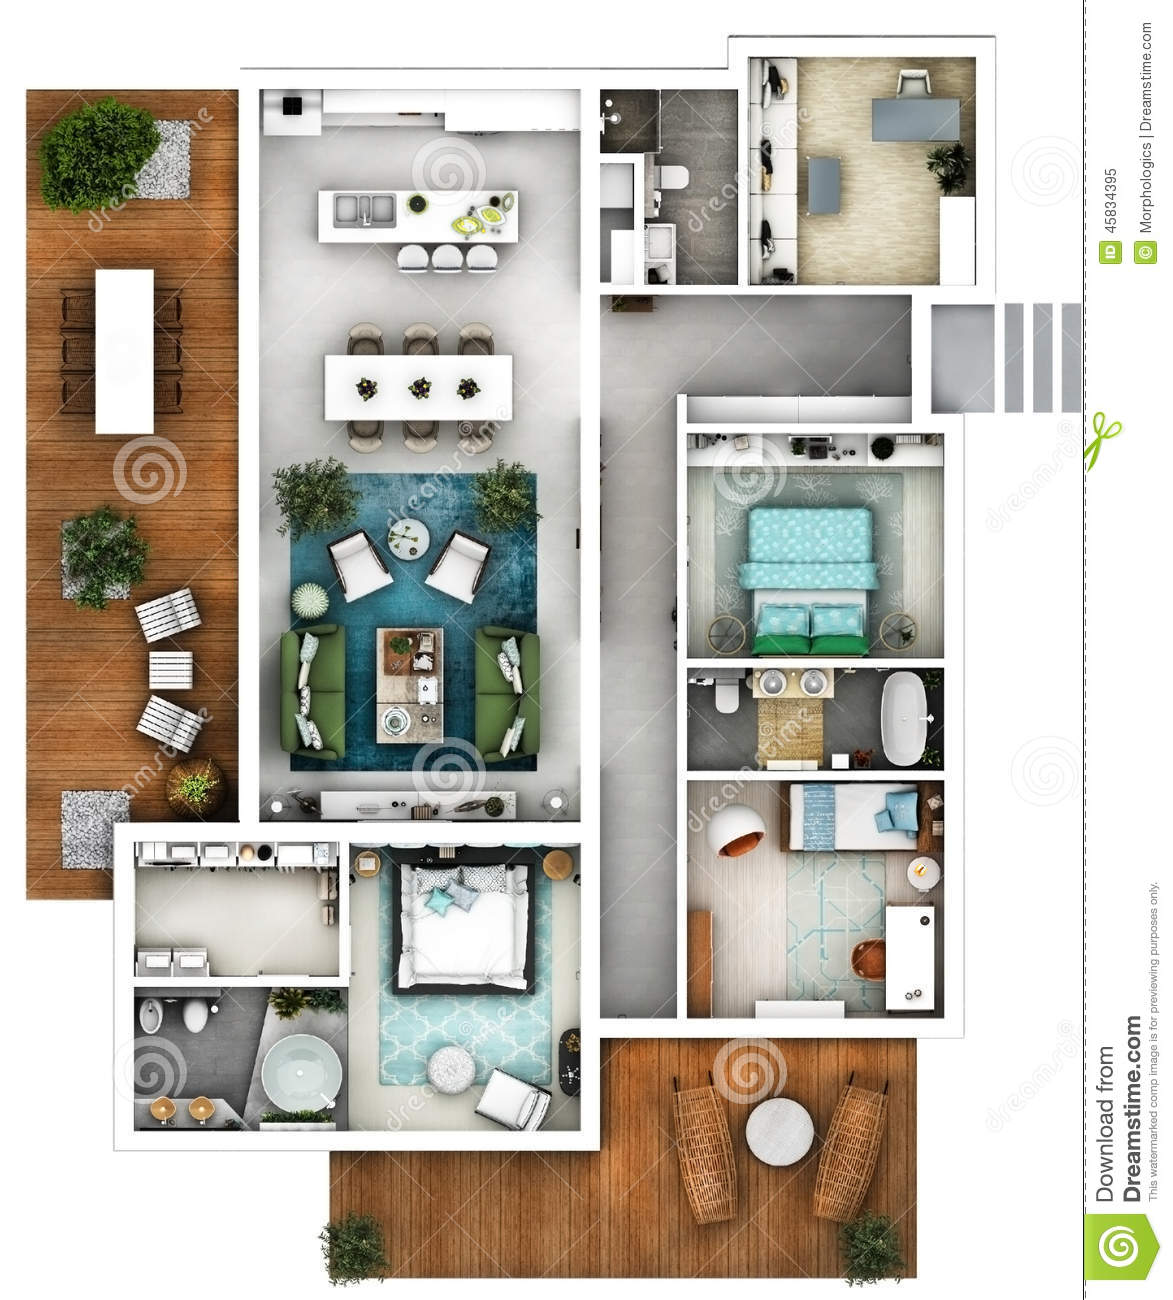 29 282 Floor Plan Photos Free Royalty Free Stock Photos From Dreamstime